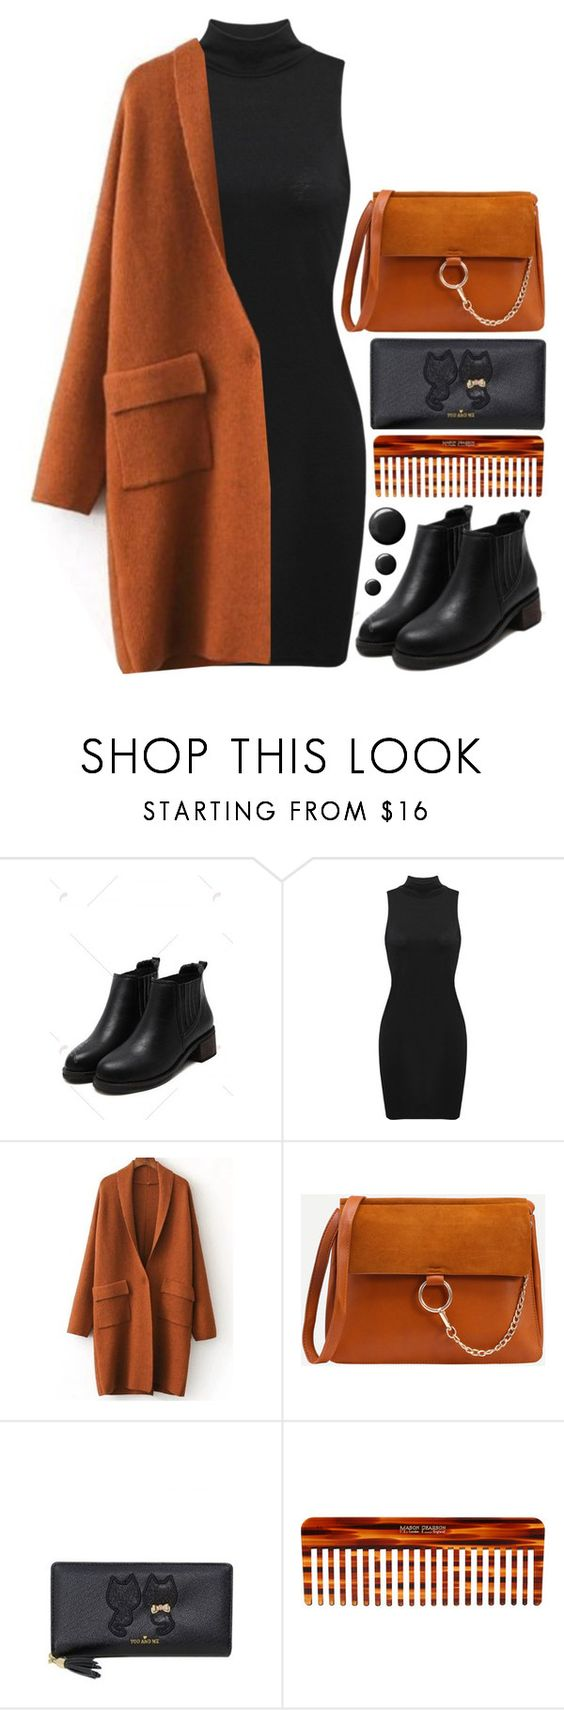 """""""Rosegal 1.6"""" by emilypondng ❤ liked on Polyvore featuring Mason Pearson and orangecrush"""